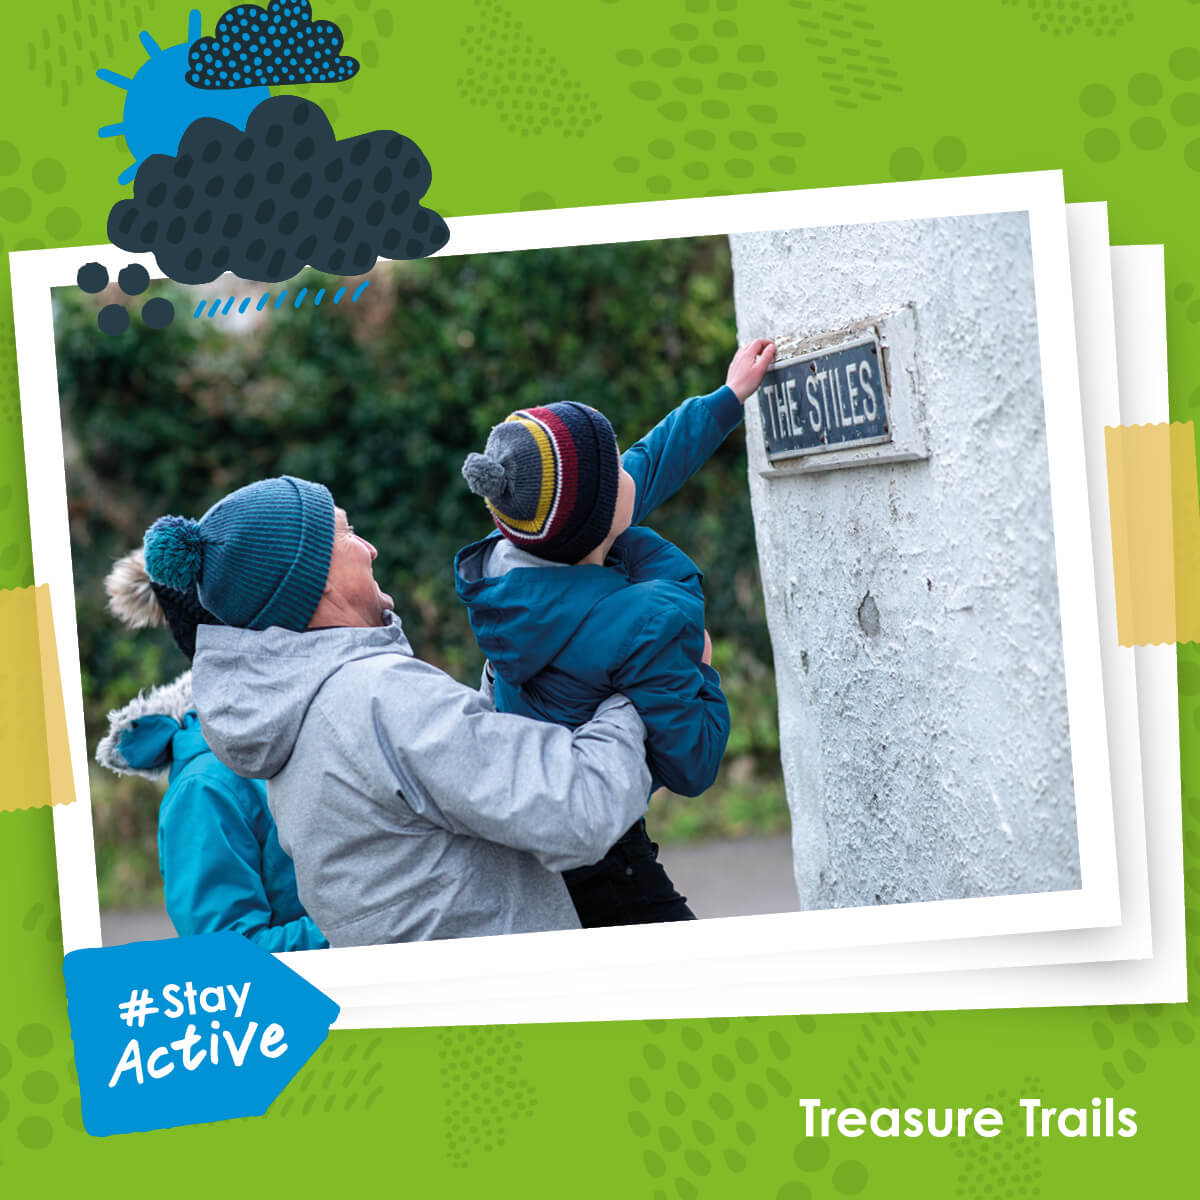 Stay active - Explore with your senses on a Treasure Trail